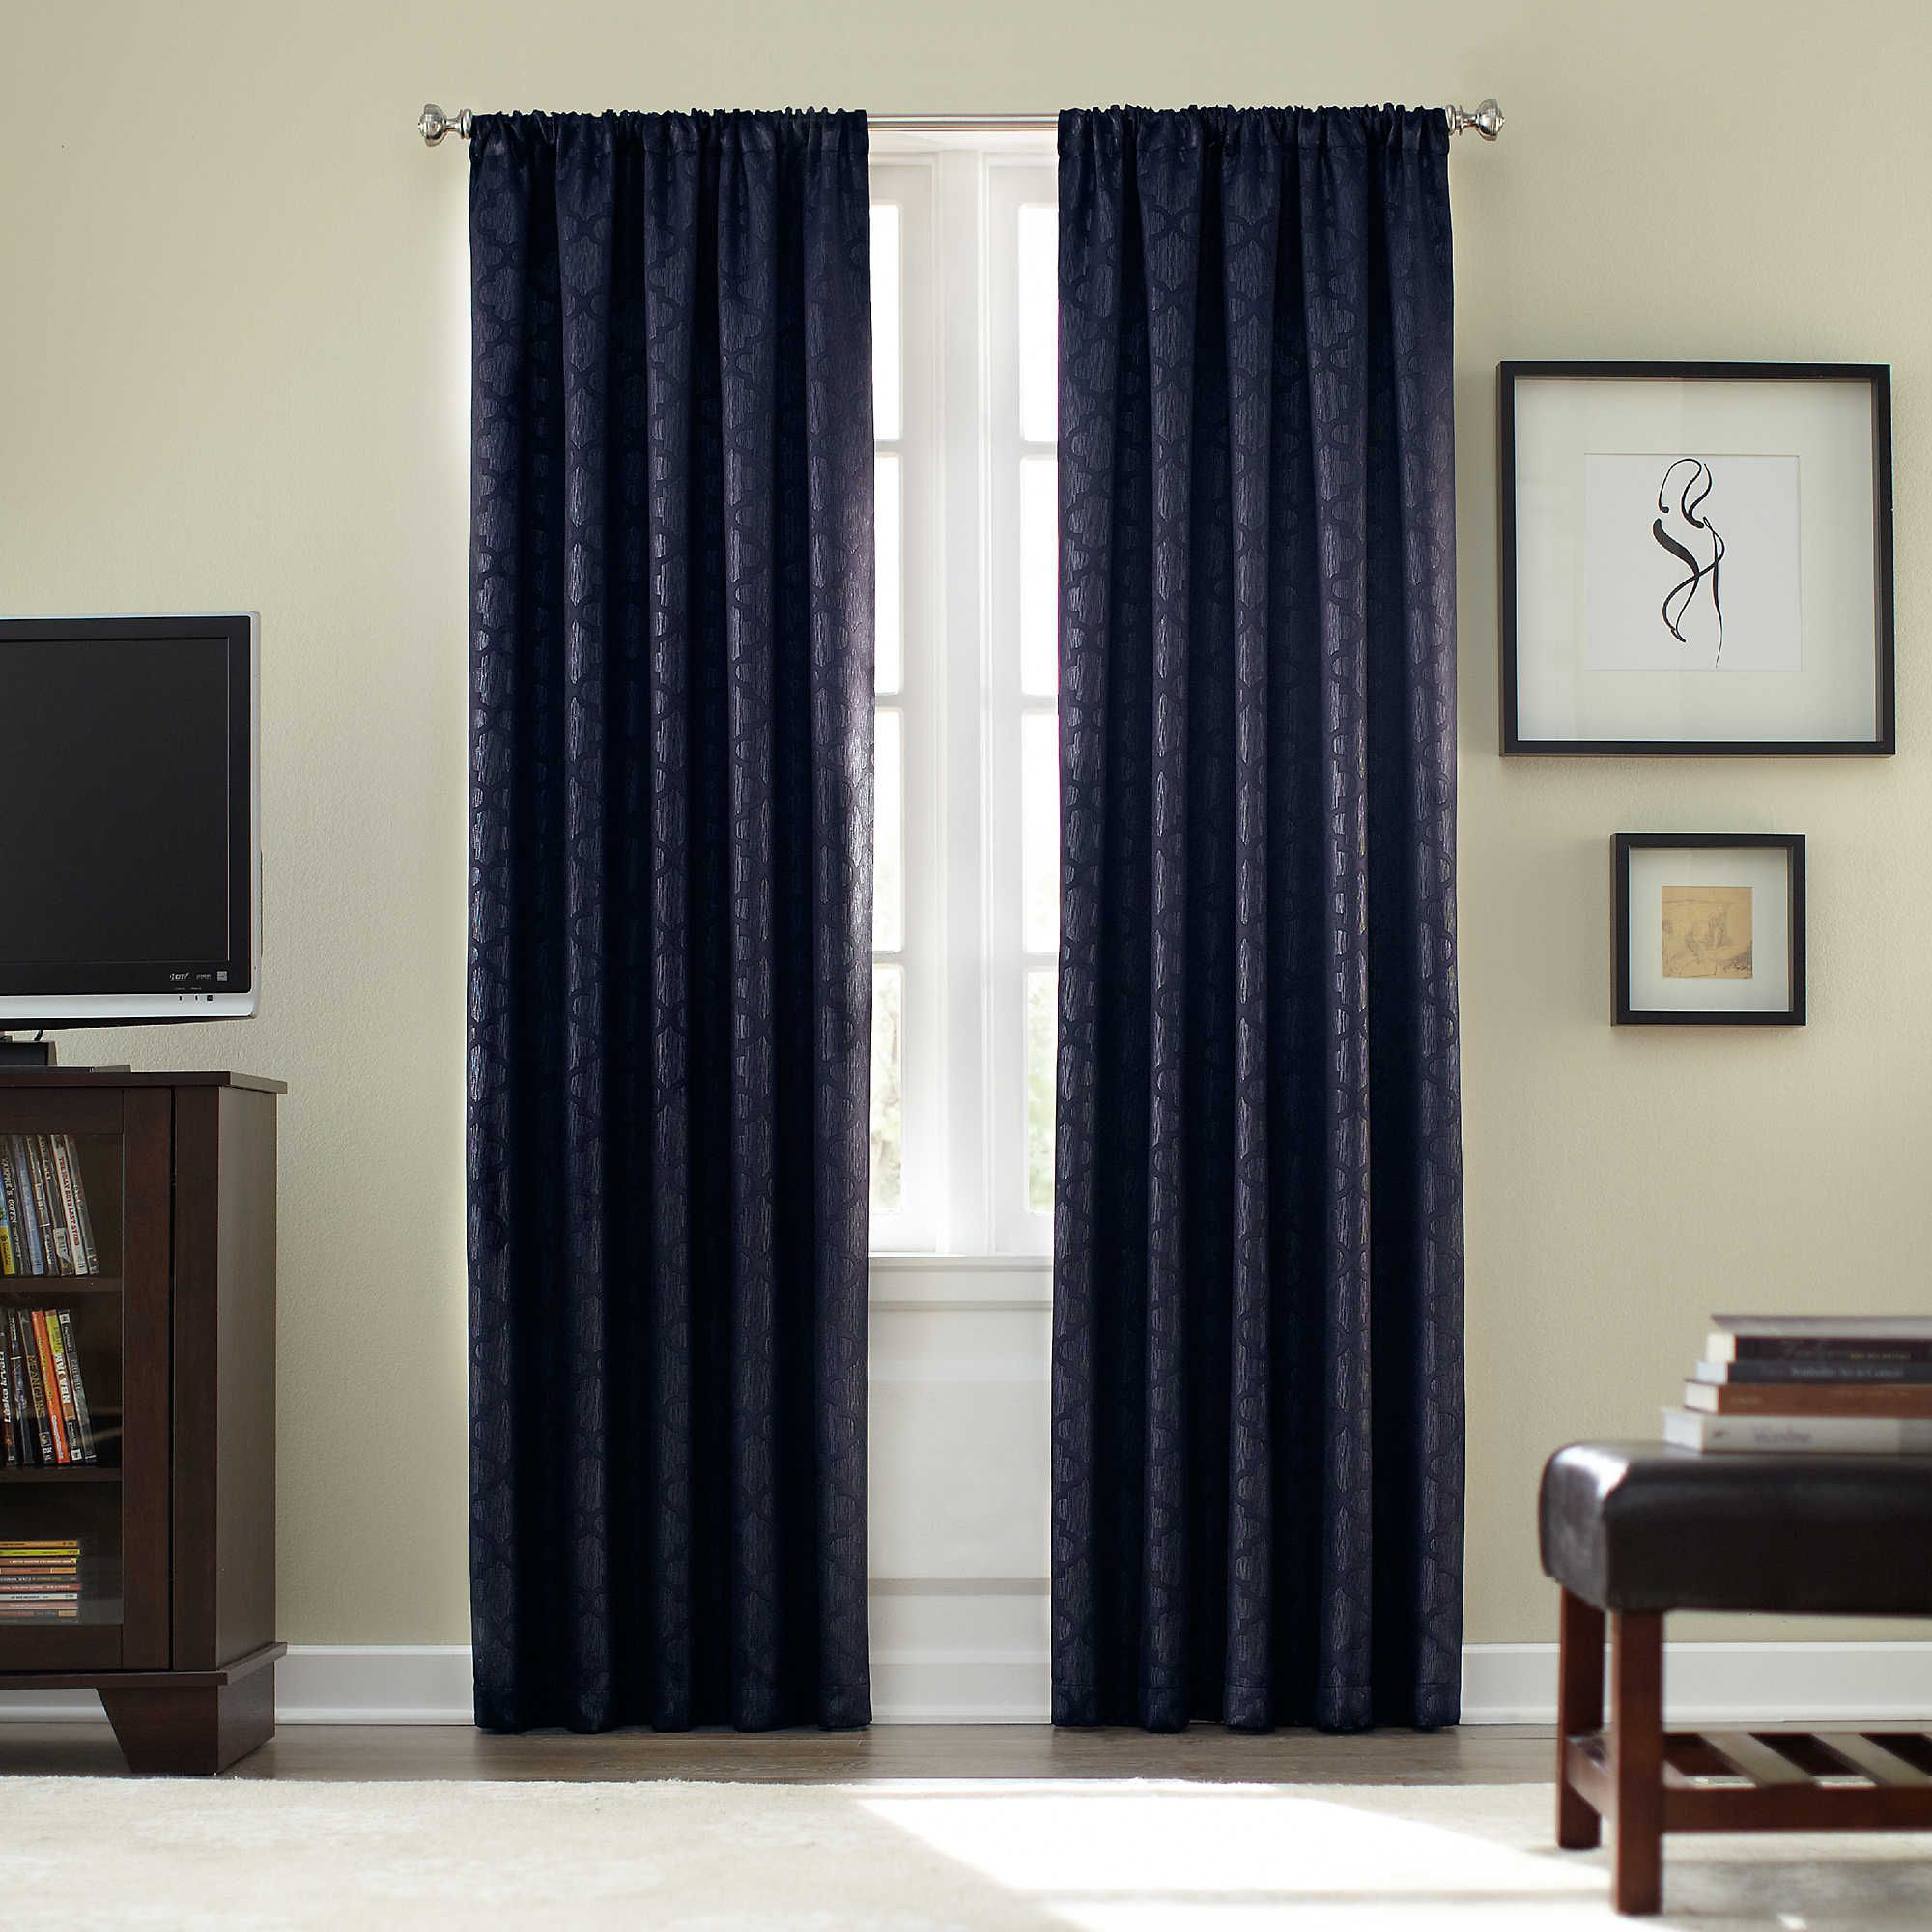 Bed against window with curtains  athena rod pocket blackout inch window curtain panel in sage